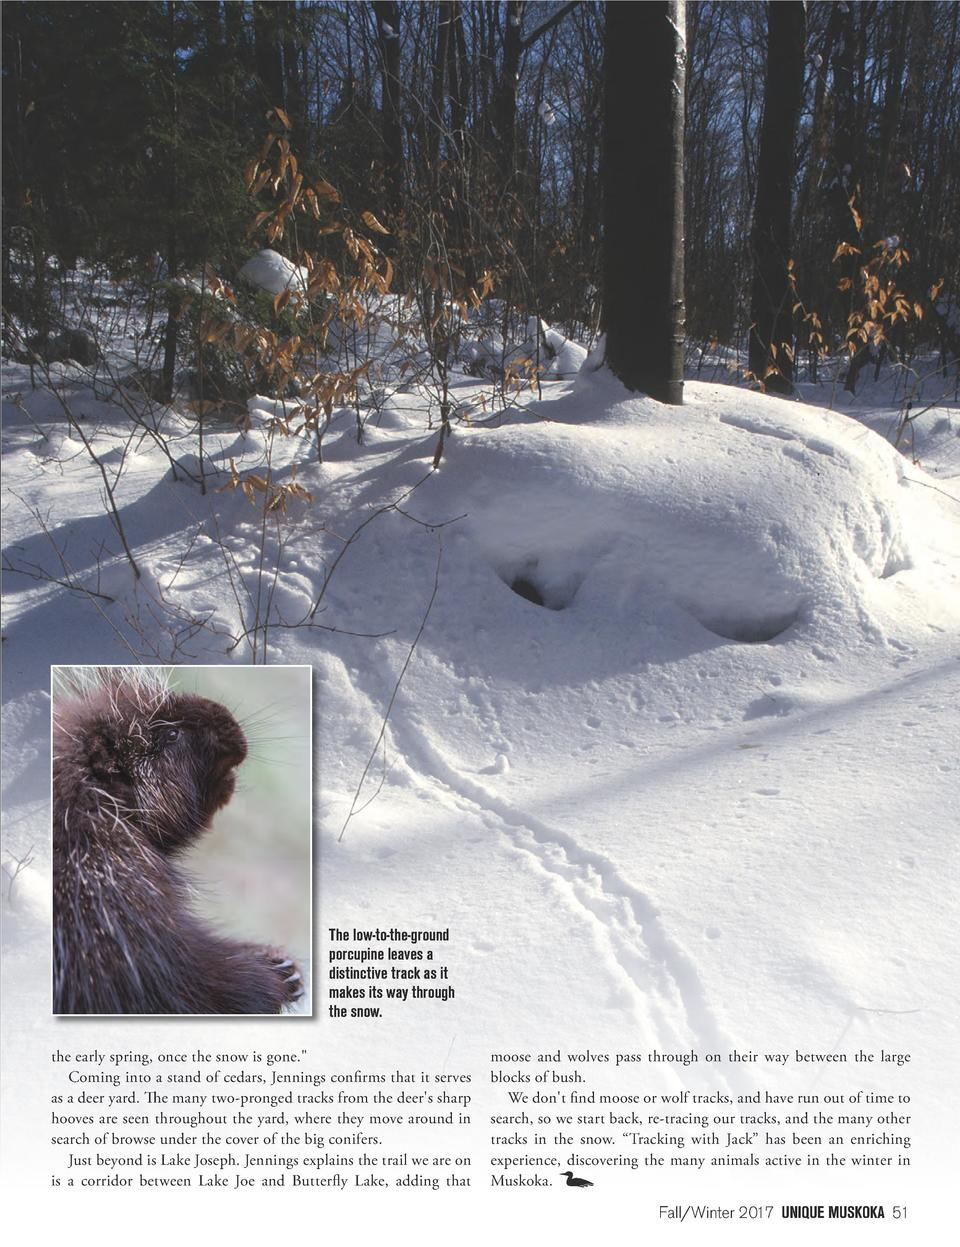 The low-to-the-ground porcupine leaves a distinctive track as it makes its way through the snow. the early spring, once th...